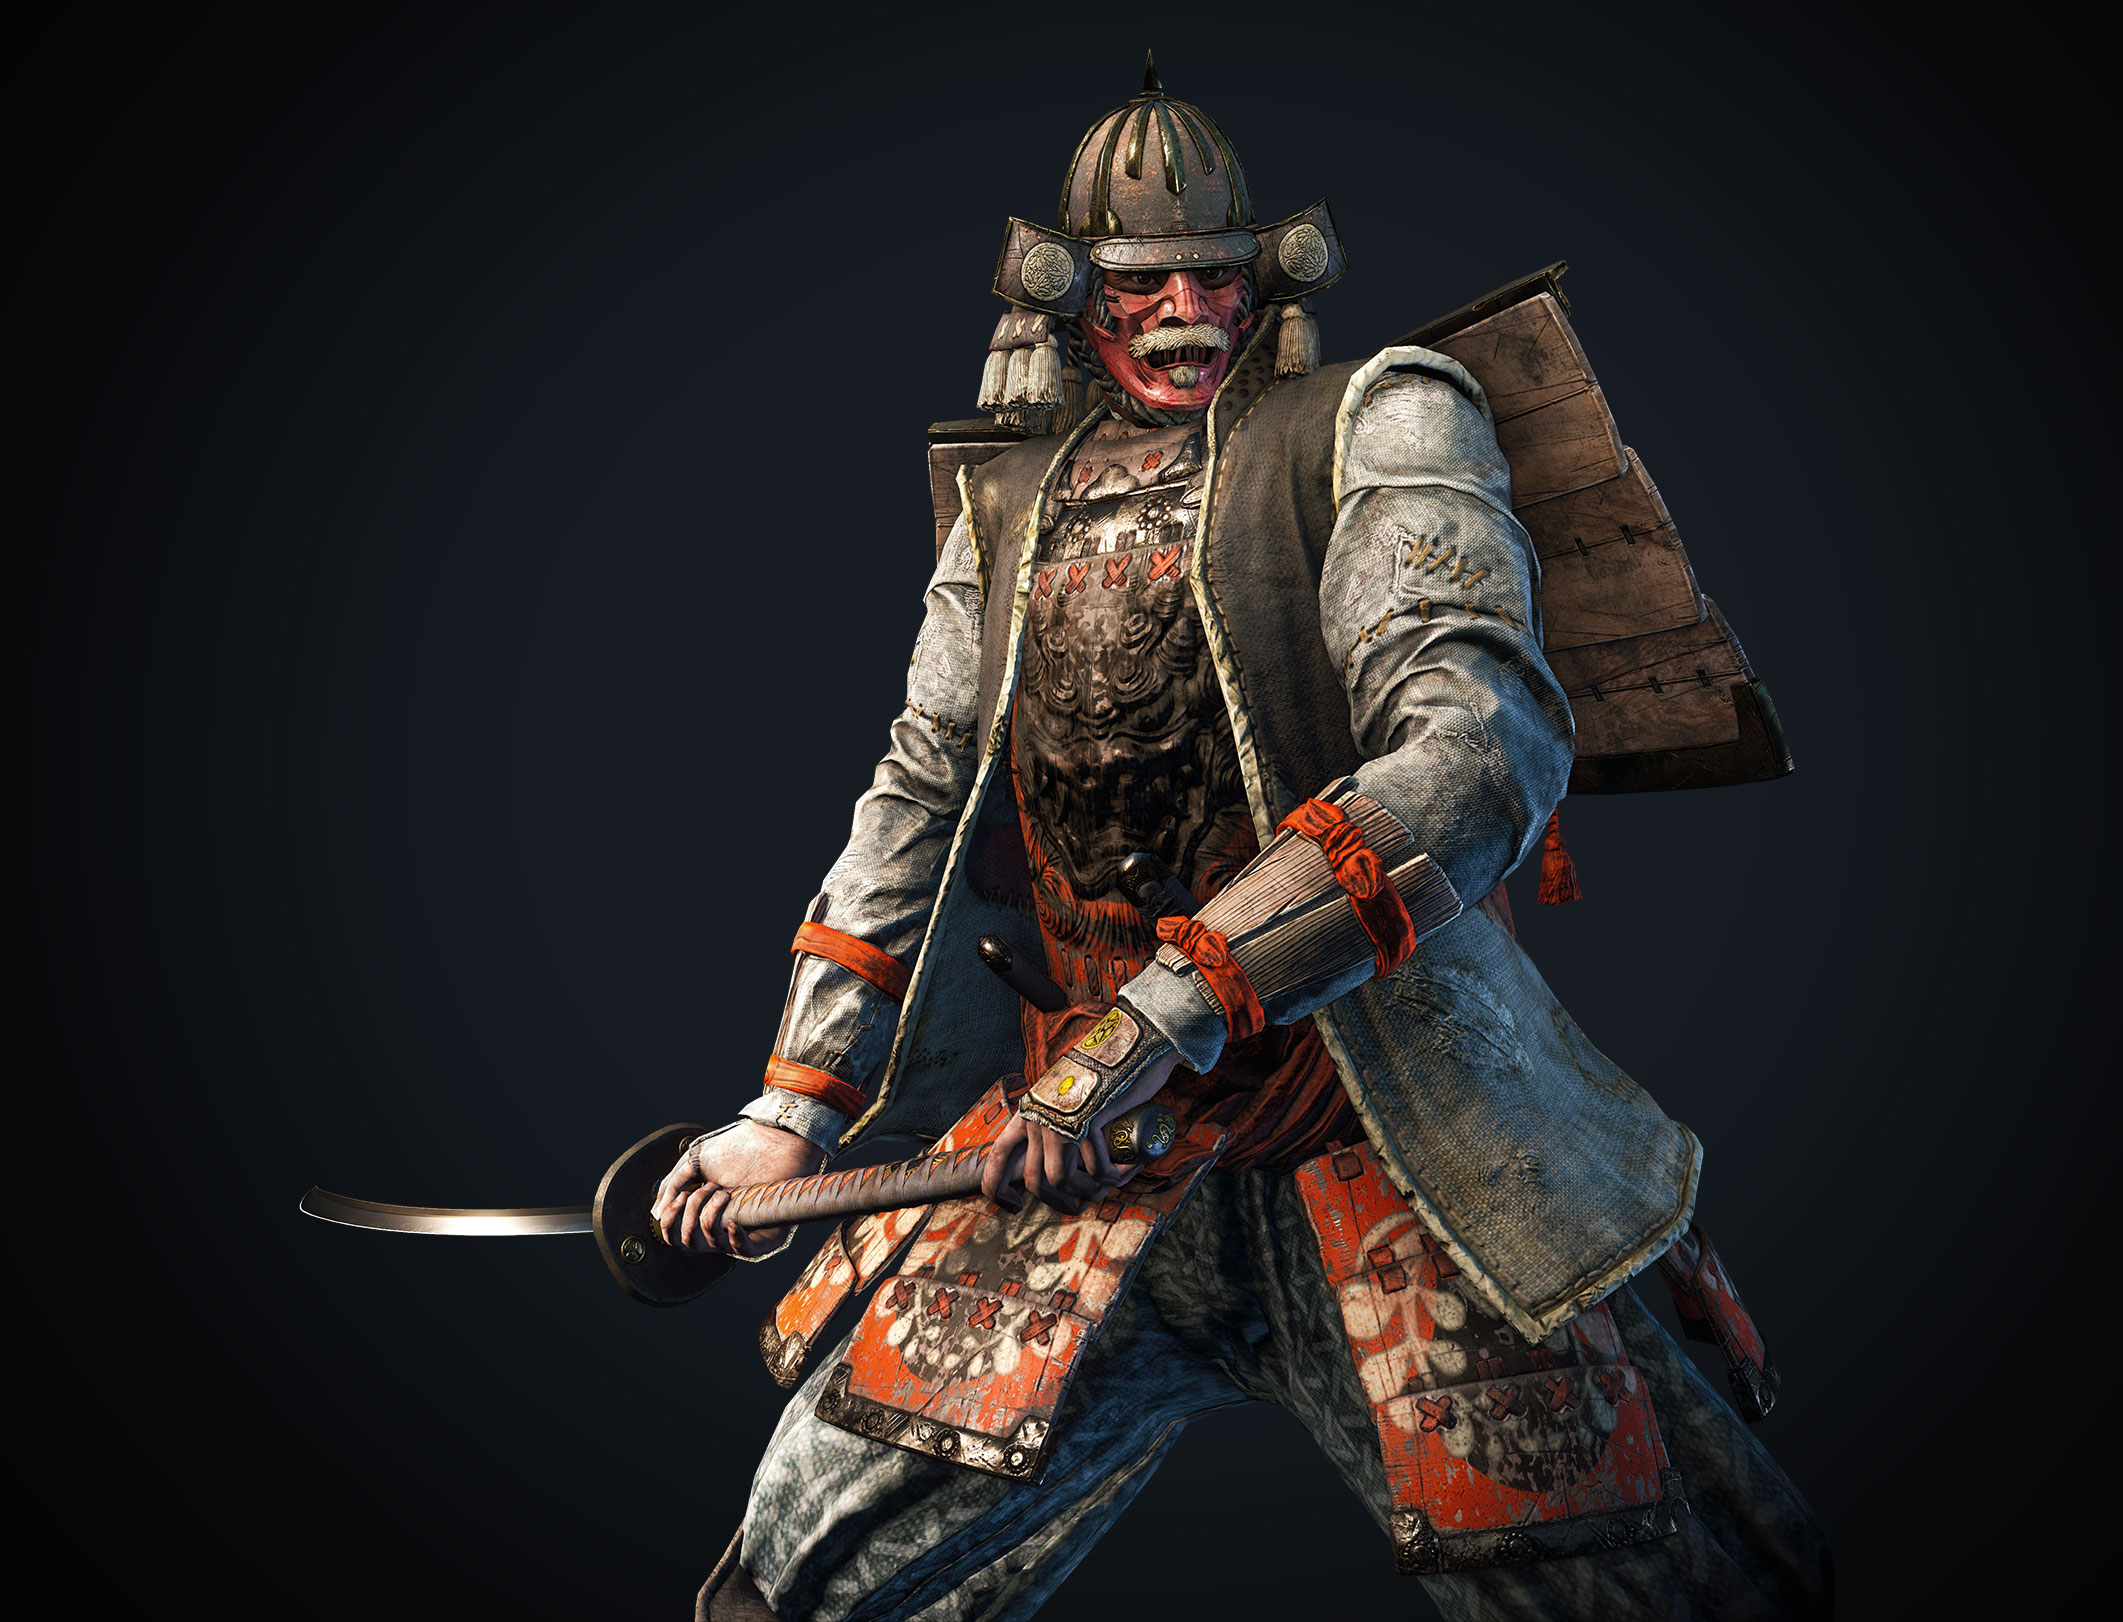 The agile samurai